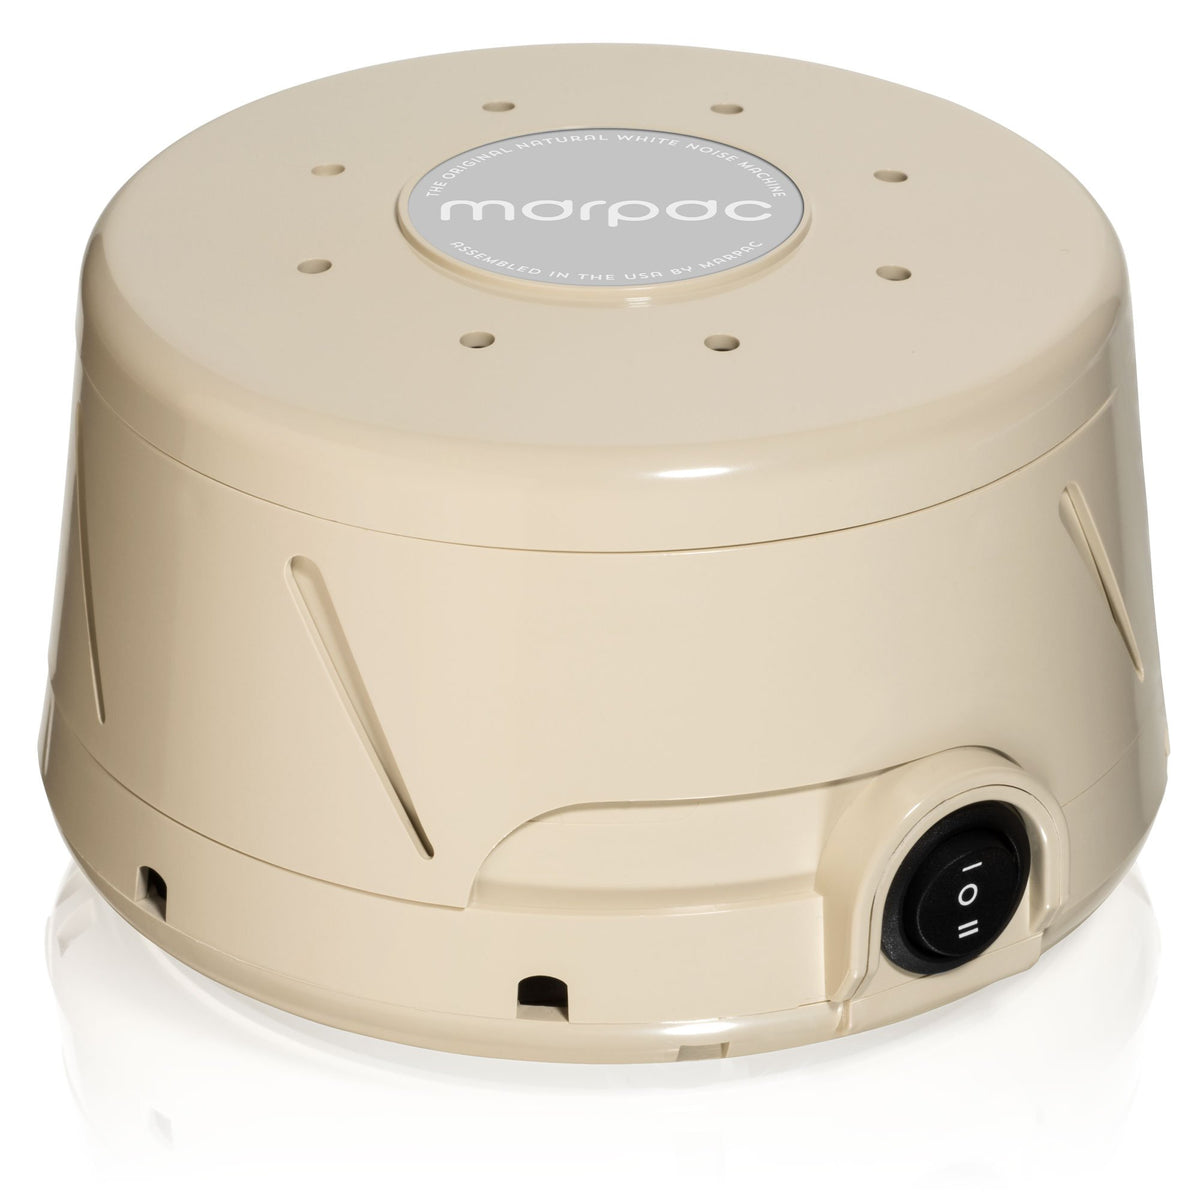 Dohm Classic Natural Sleep Sound Machine from Yogasleep - side view in tan